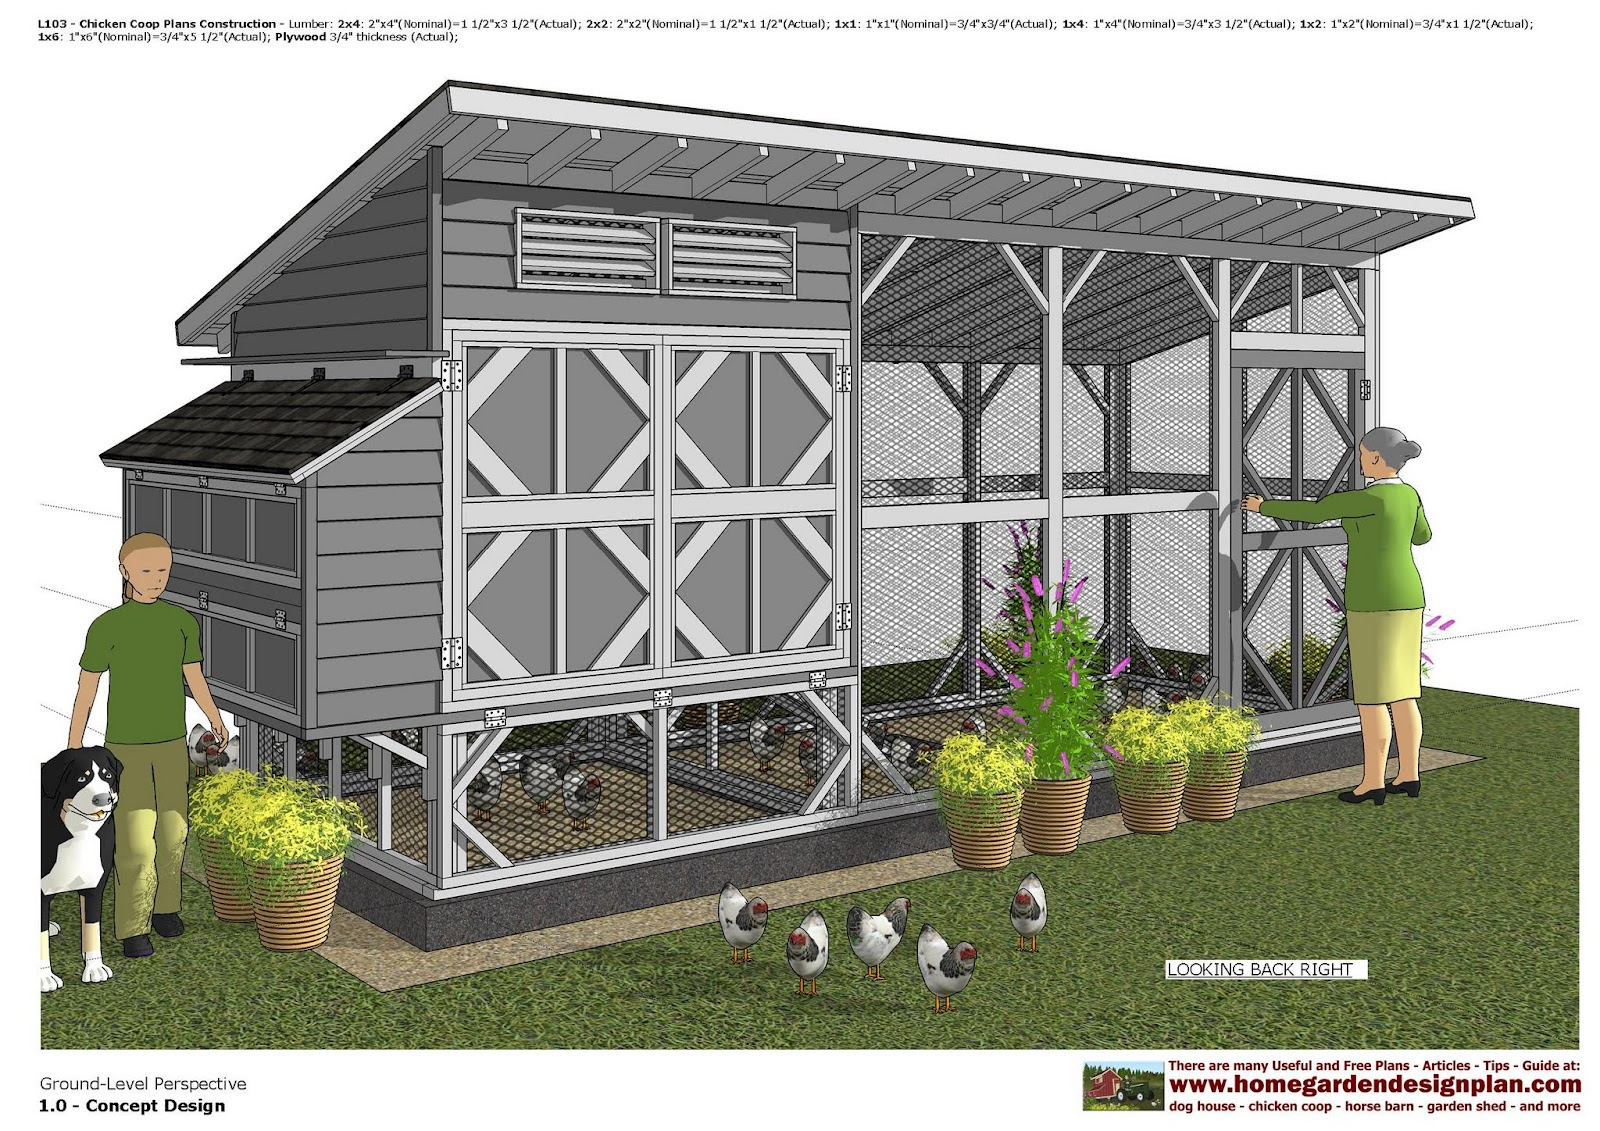 Home garden plans l103 chicken coop plans chicken for Plans chicken coop